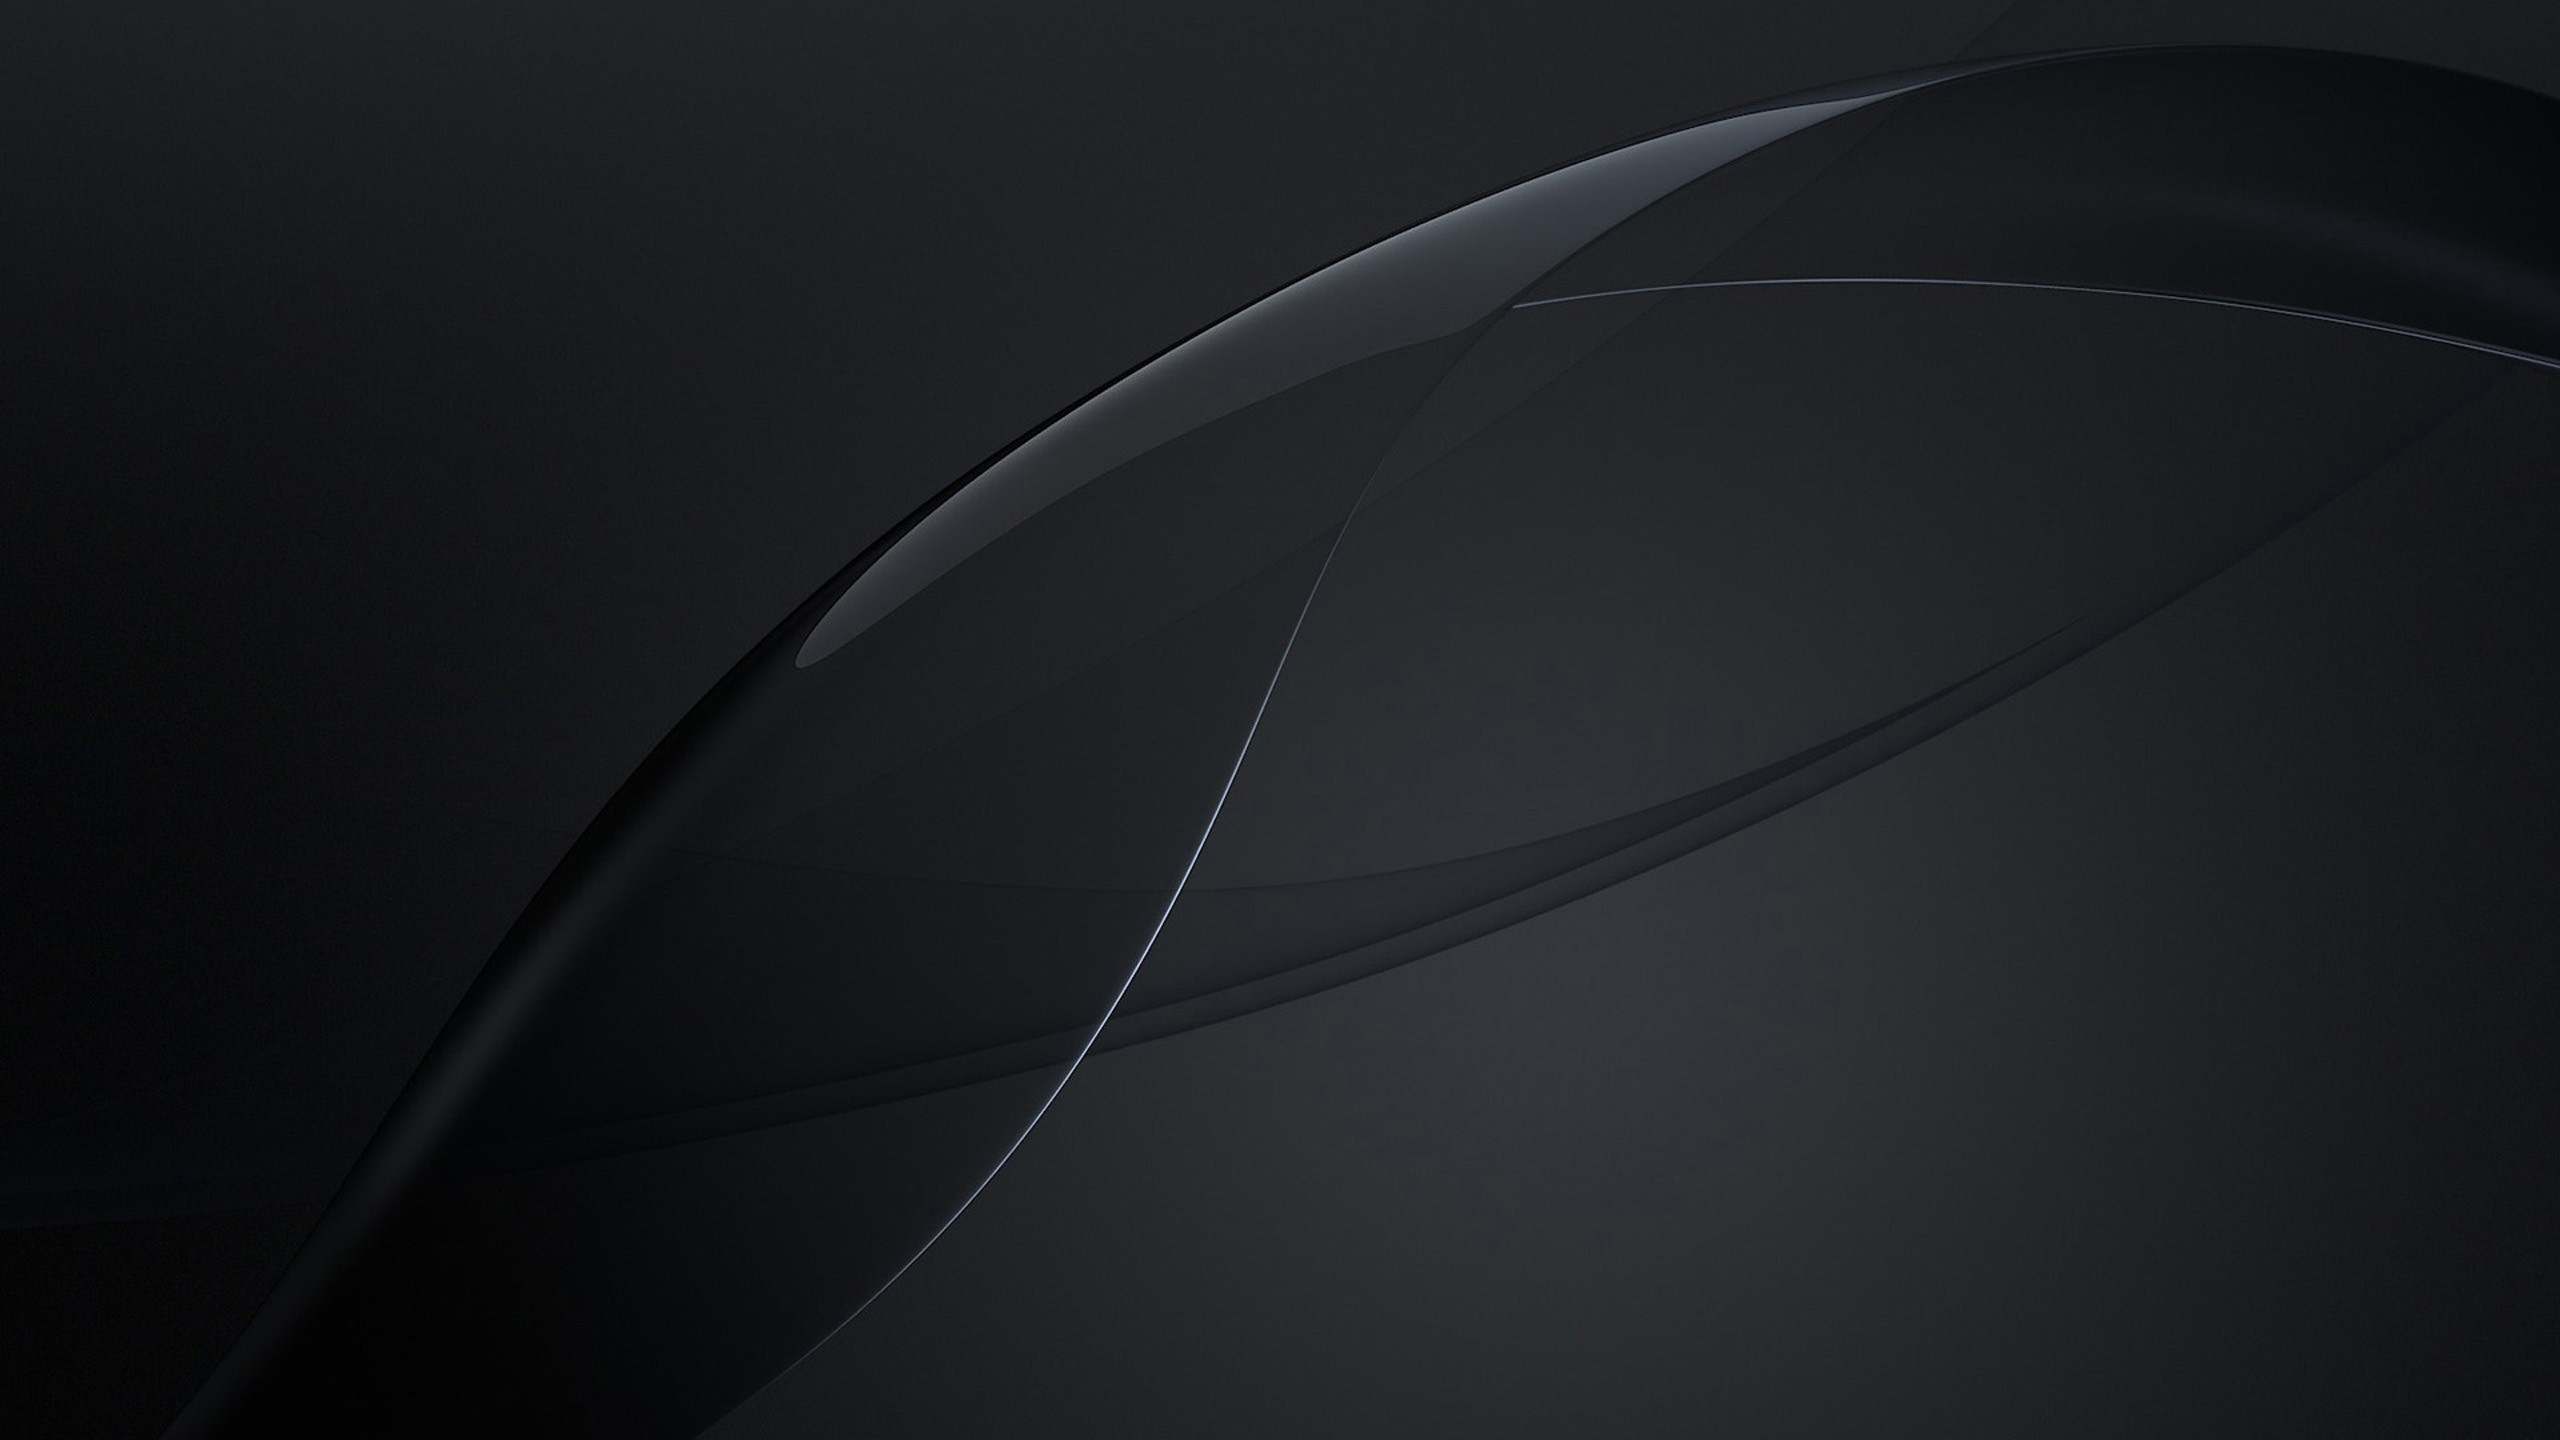 sony hd wallpaper 74 images